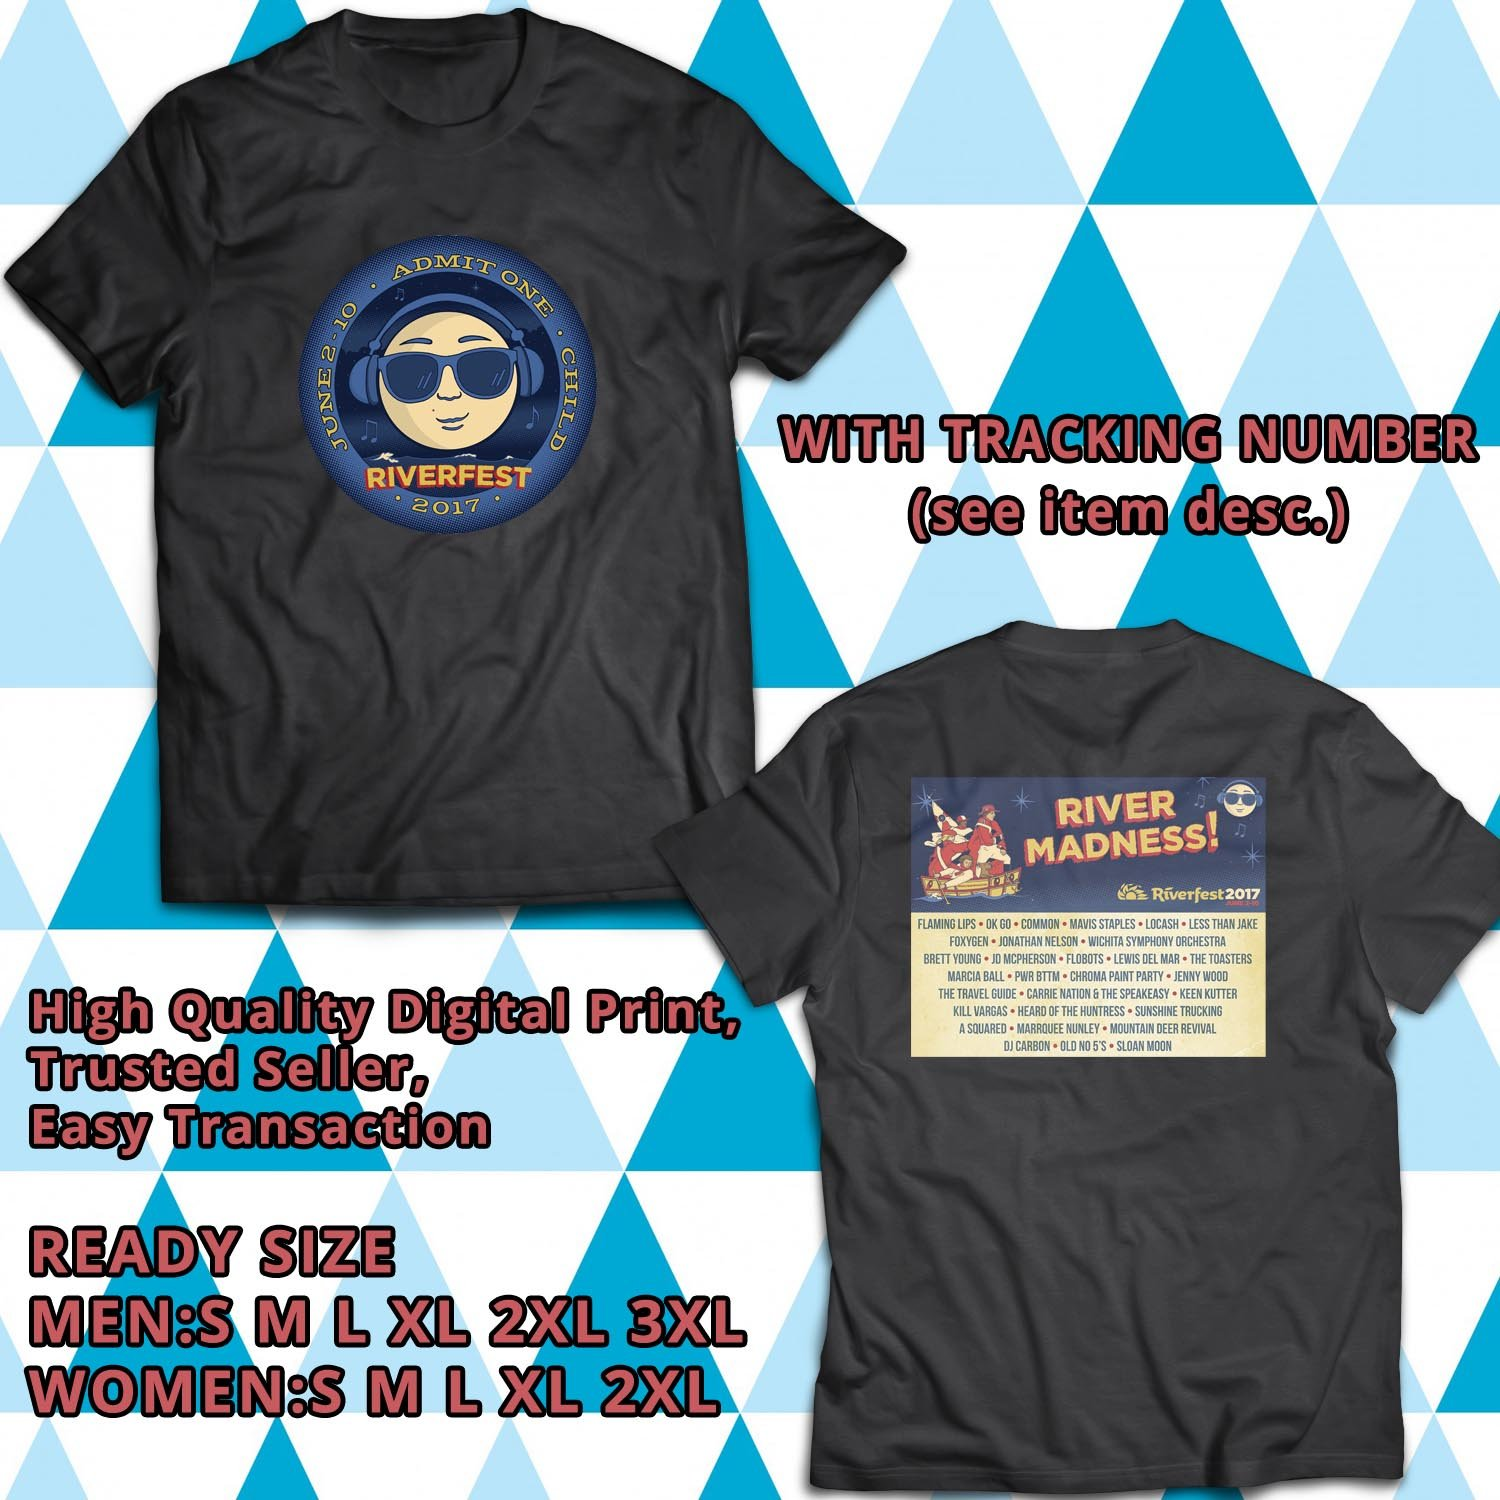 HITS WICHITA RIVER FEST 2017 BLACK TEE'S 2SIDE MAN WOMEN ASTR 998